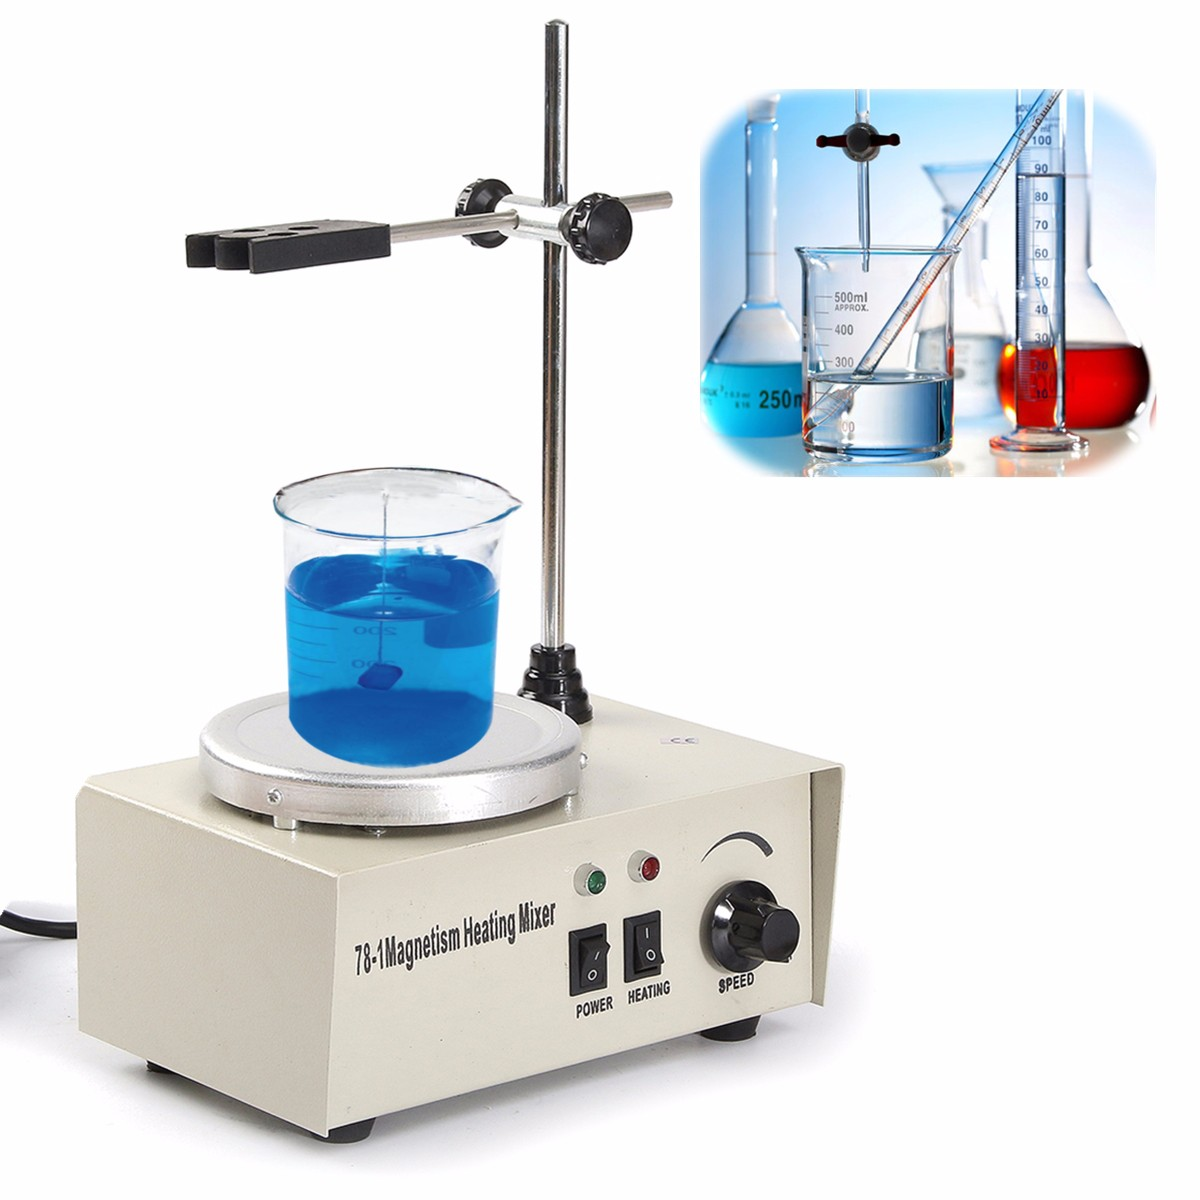 KiCute 220V 50HZ Lab Supplies Chemistry Magnetic Stirrer Magnetic Stirrer Office Laboratory Magnetic Mixer Stirrers Apparatus kicute new laboratory chemistry magnetic stirrer magnetic stirrer home laboratory magnetic mixer stirrers apparatus ac100 240v